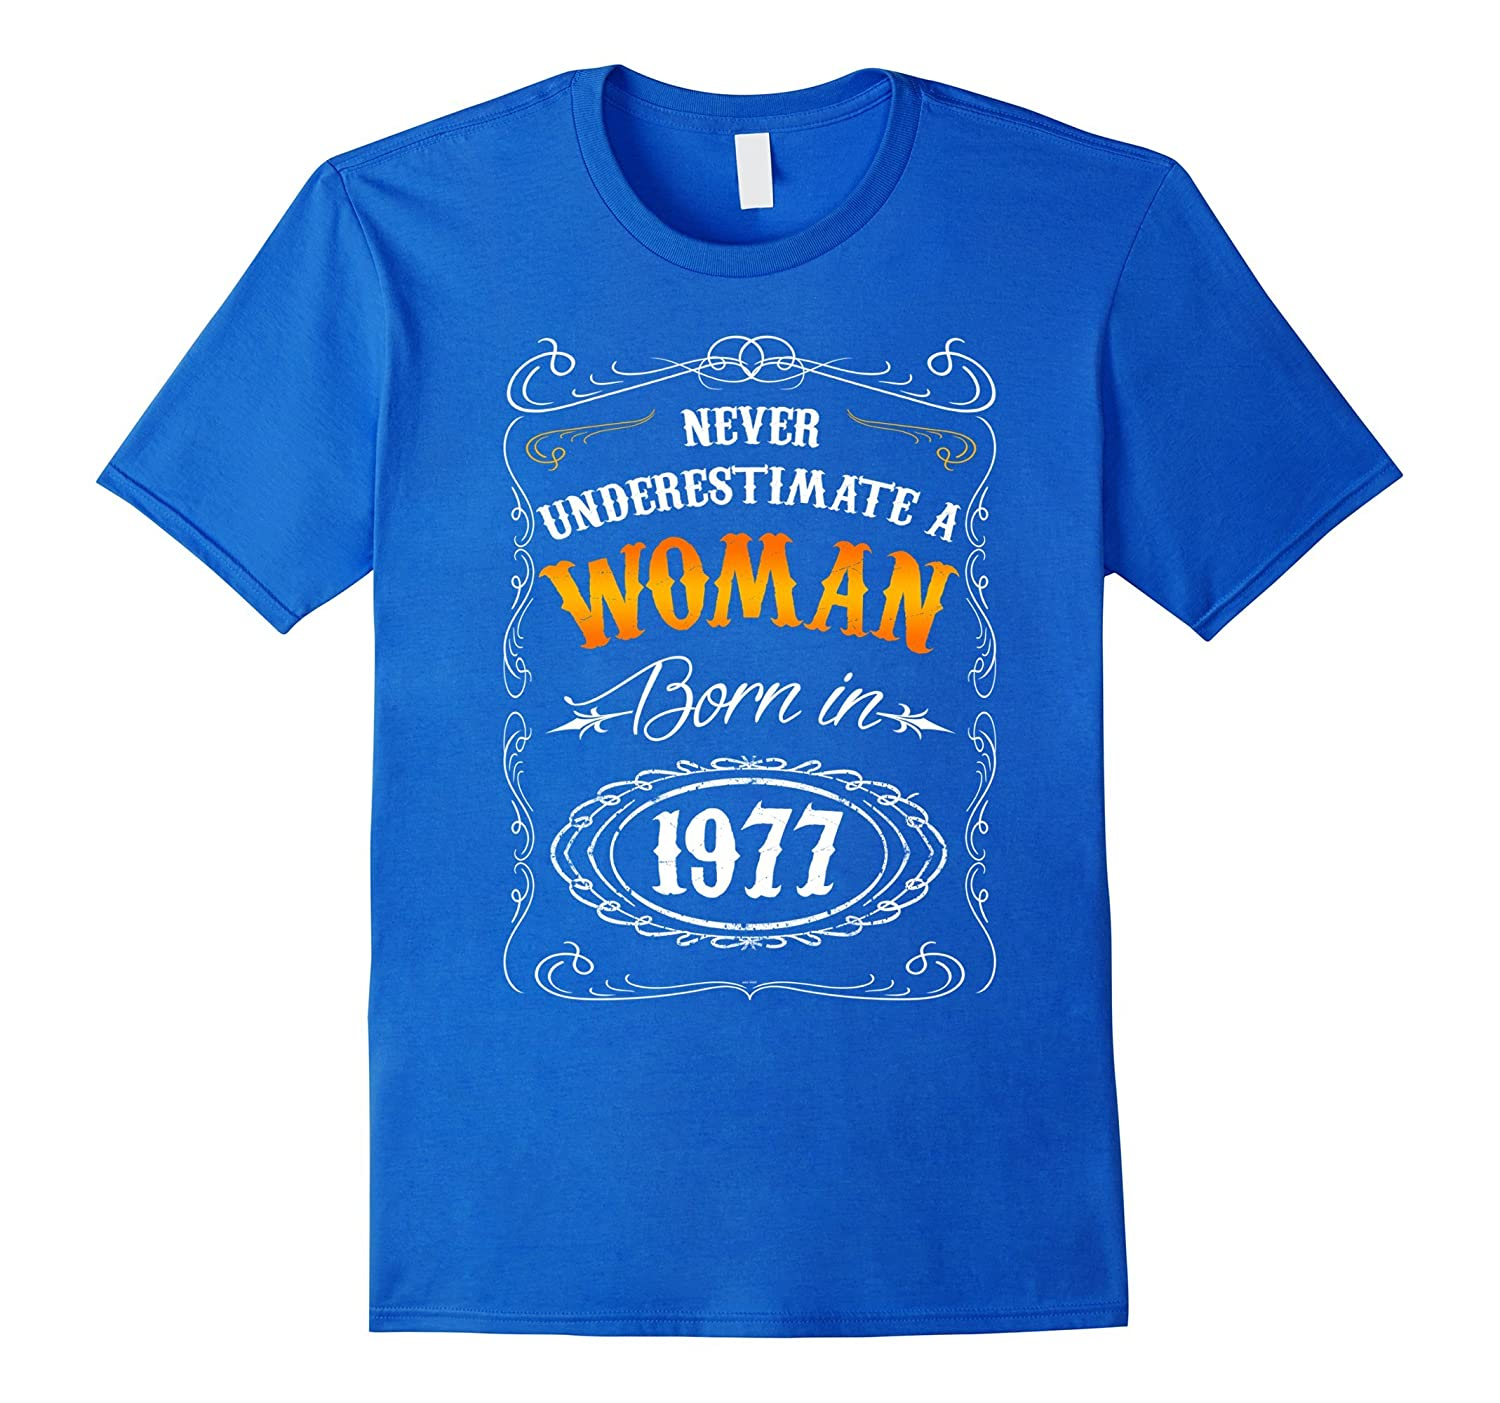 40th 1977 birthday gifts for women mom wife t shirt-Art